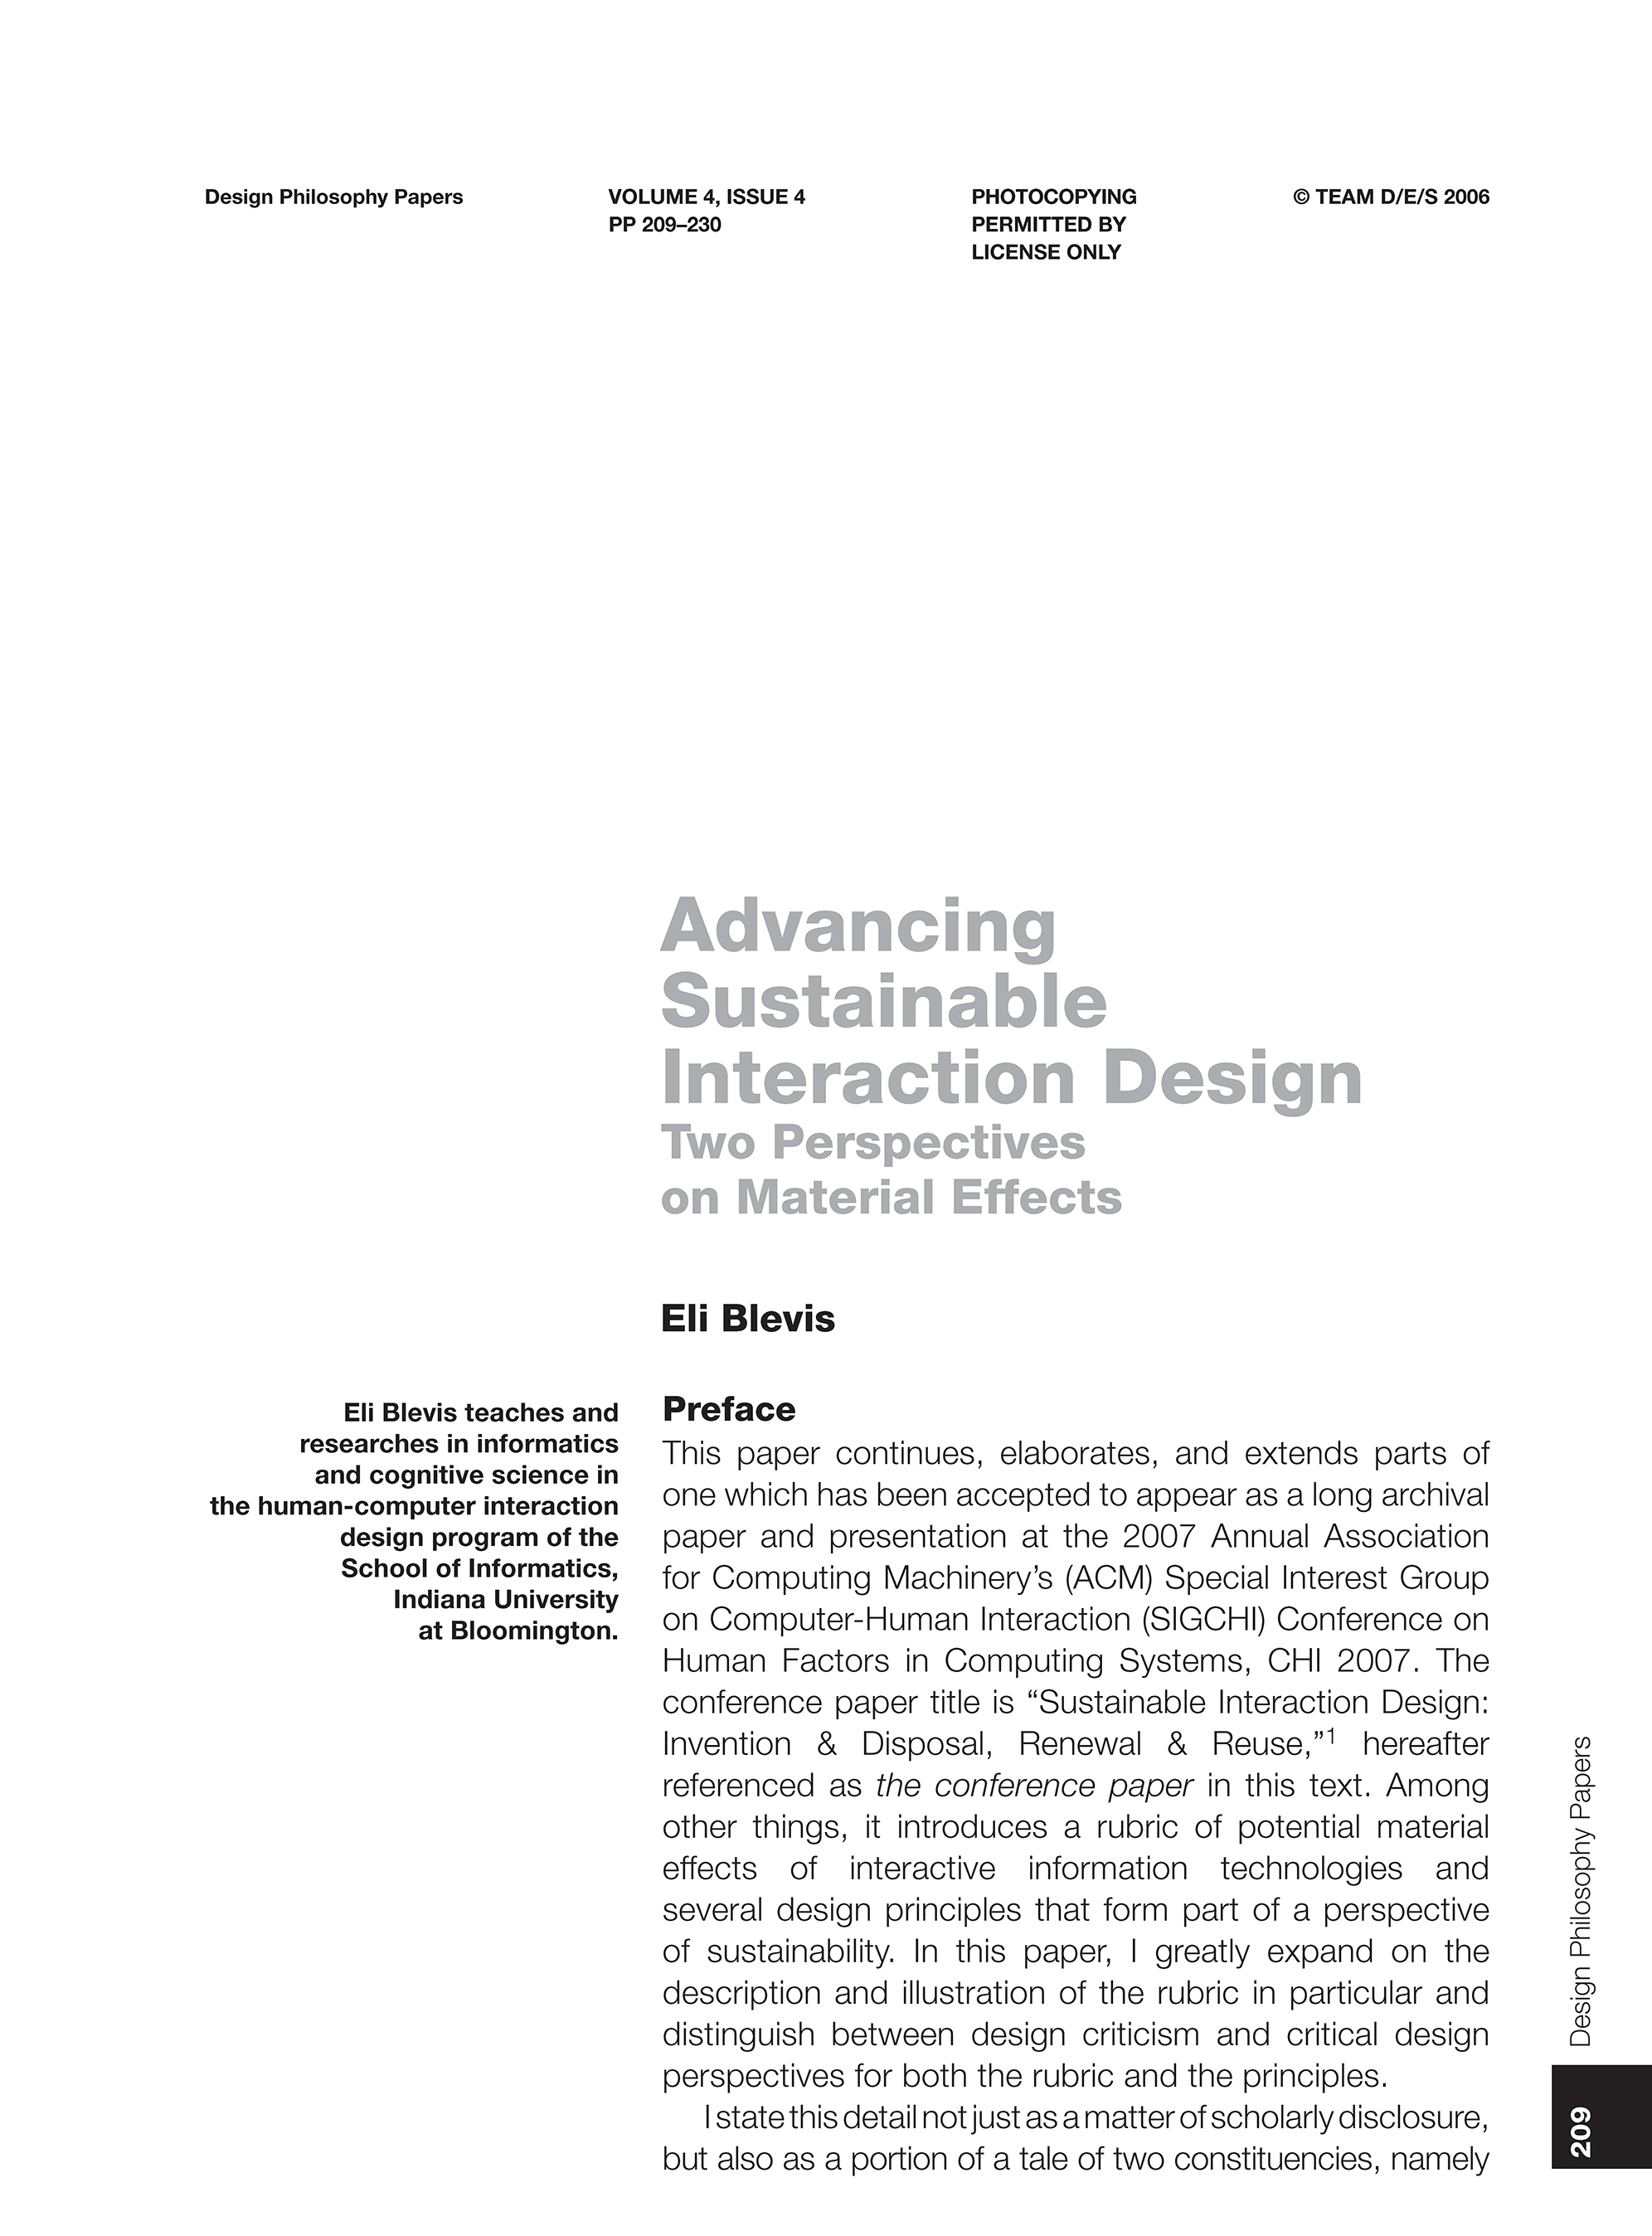 Advancing Sustainable Interaction Design: Two Perspectives on Material Effects